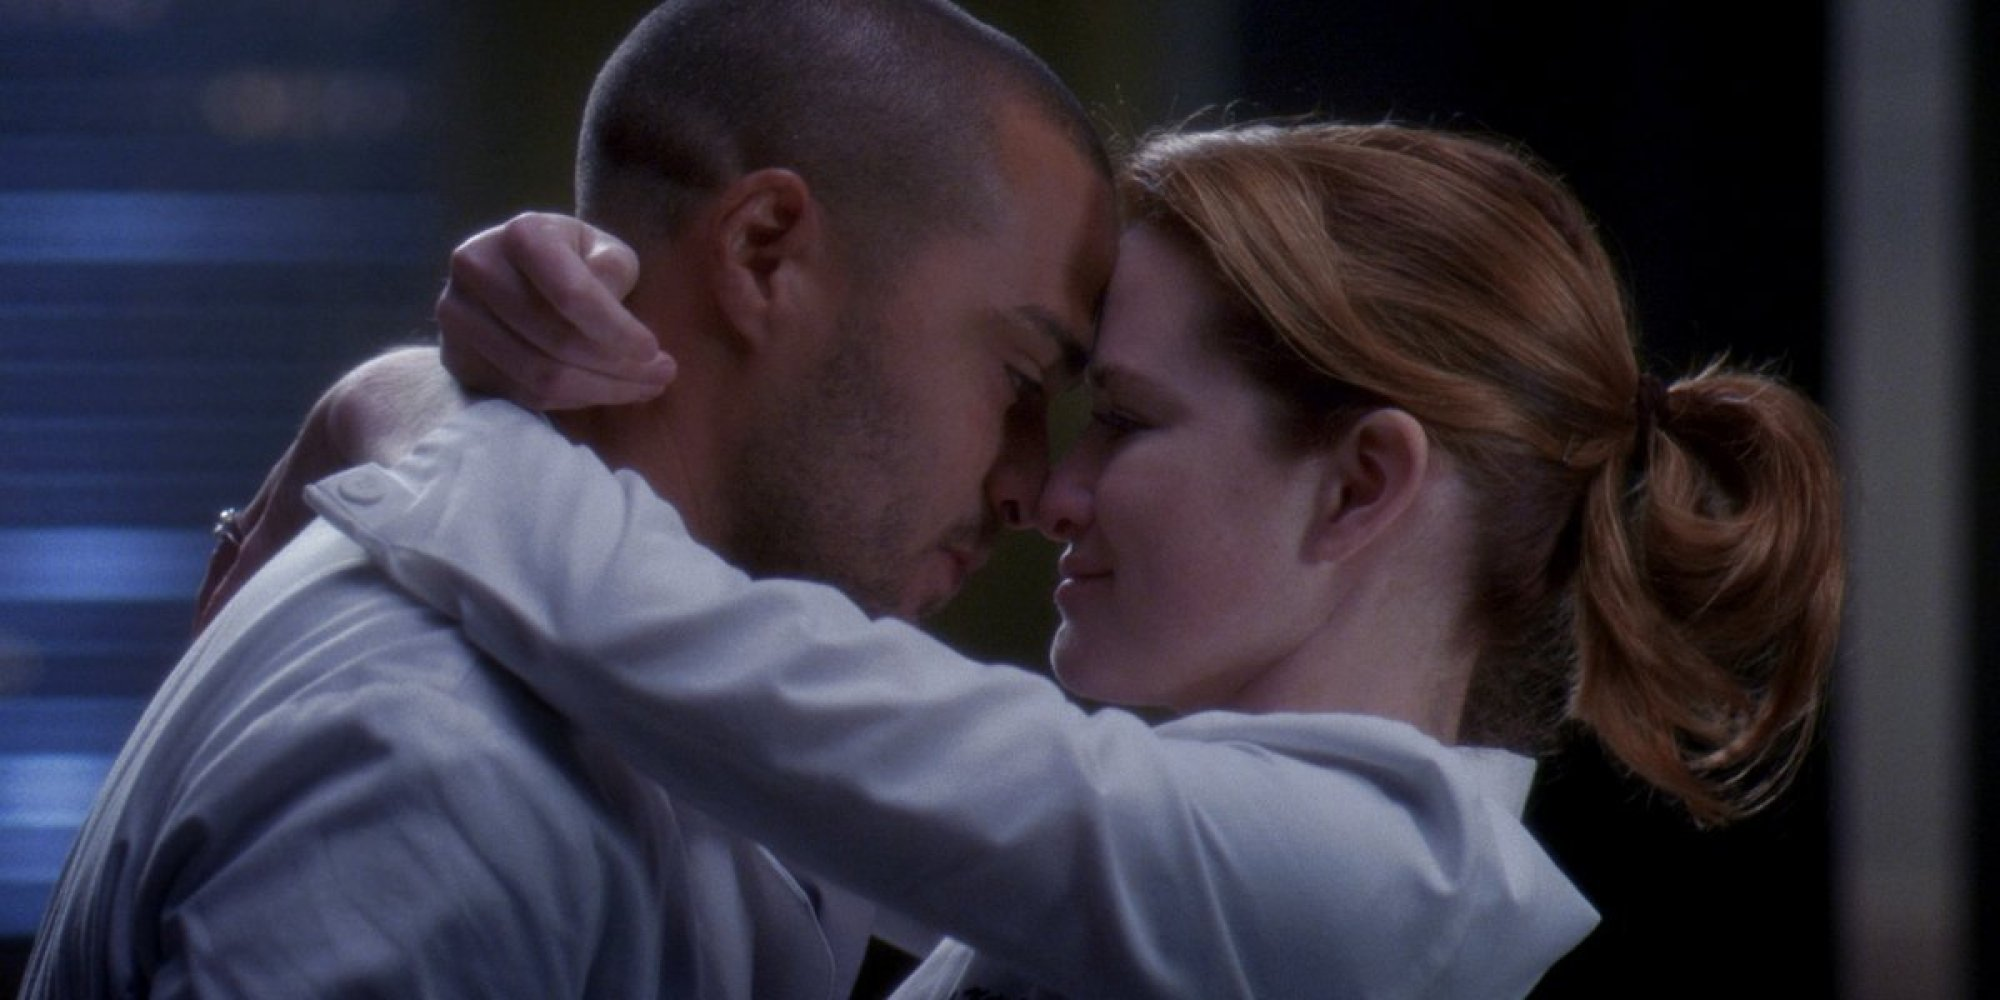 greys anatomy april and jackson relationship help